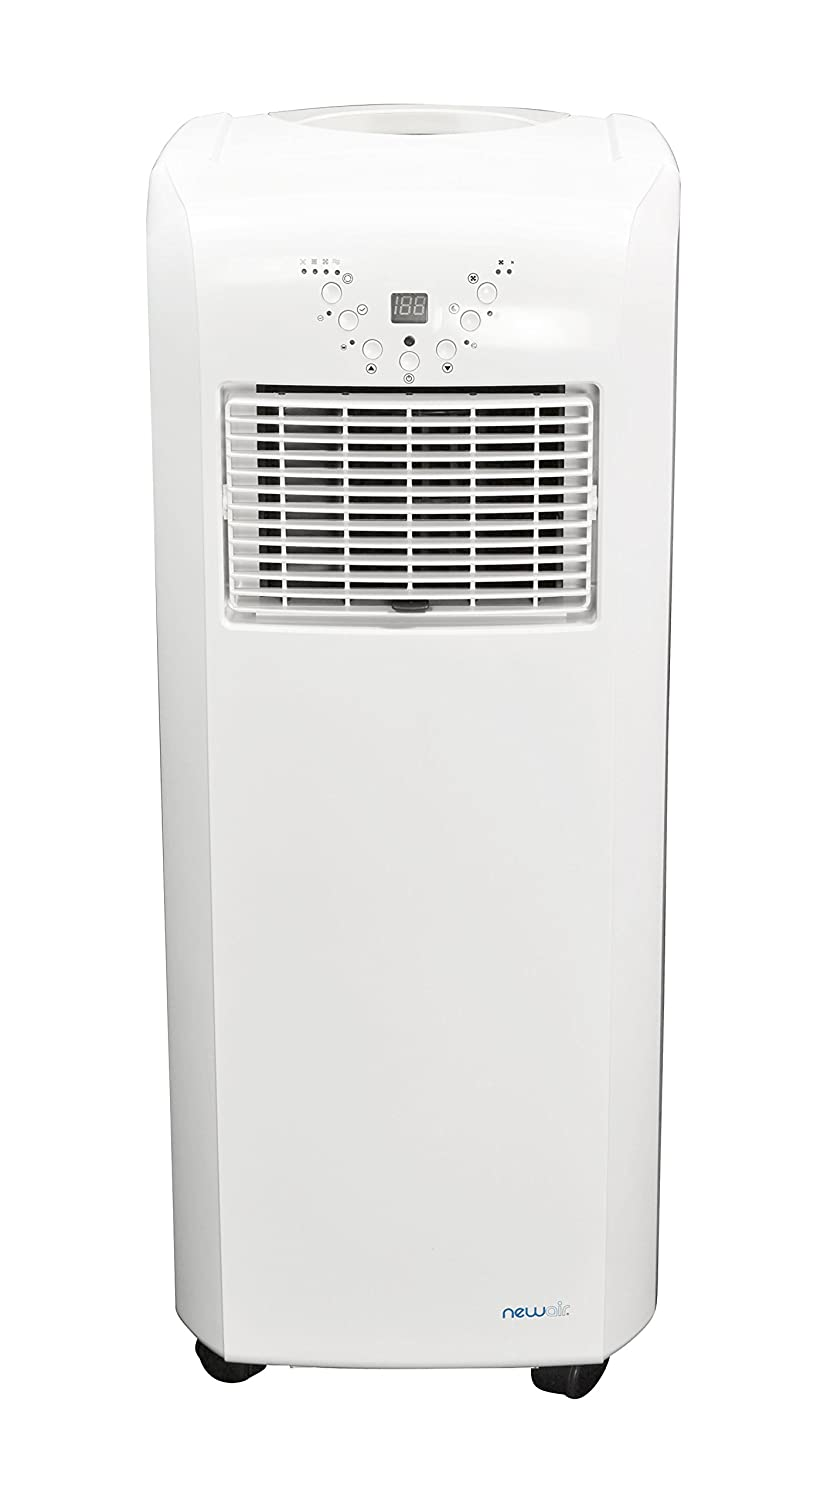 amazoncom newair ac 10100h ultra compact 10000 btu portable air conditioner and heater home kitchen - Air Conditioner And Heater